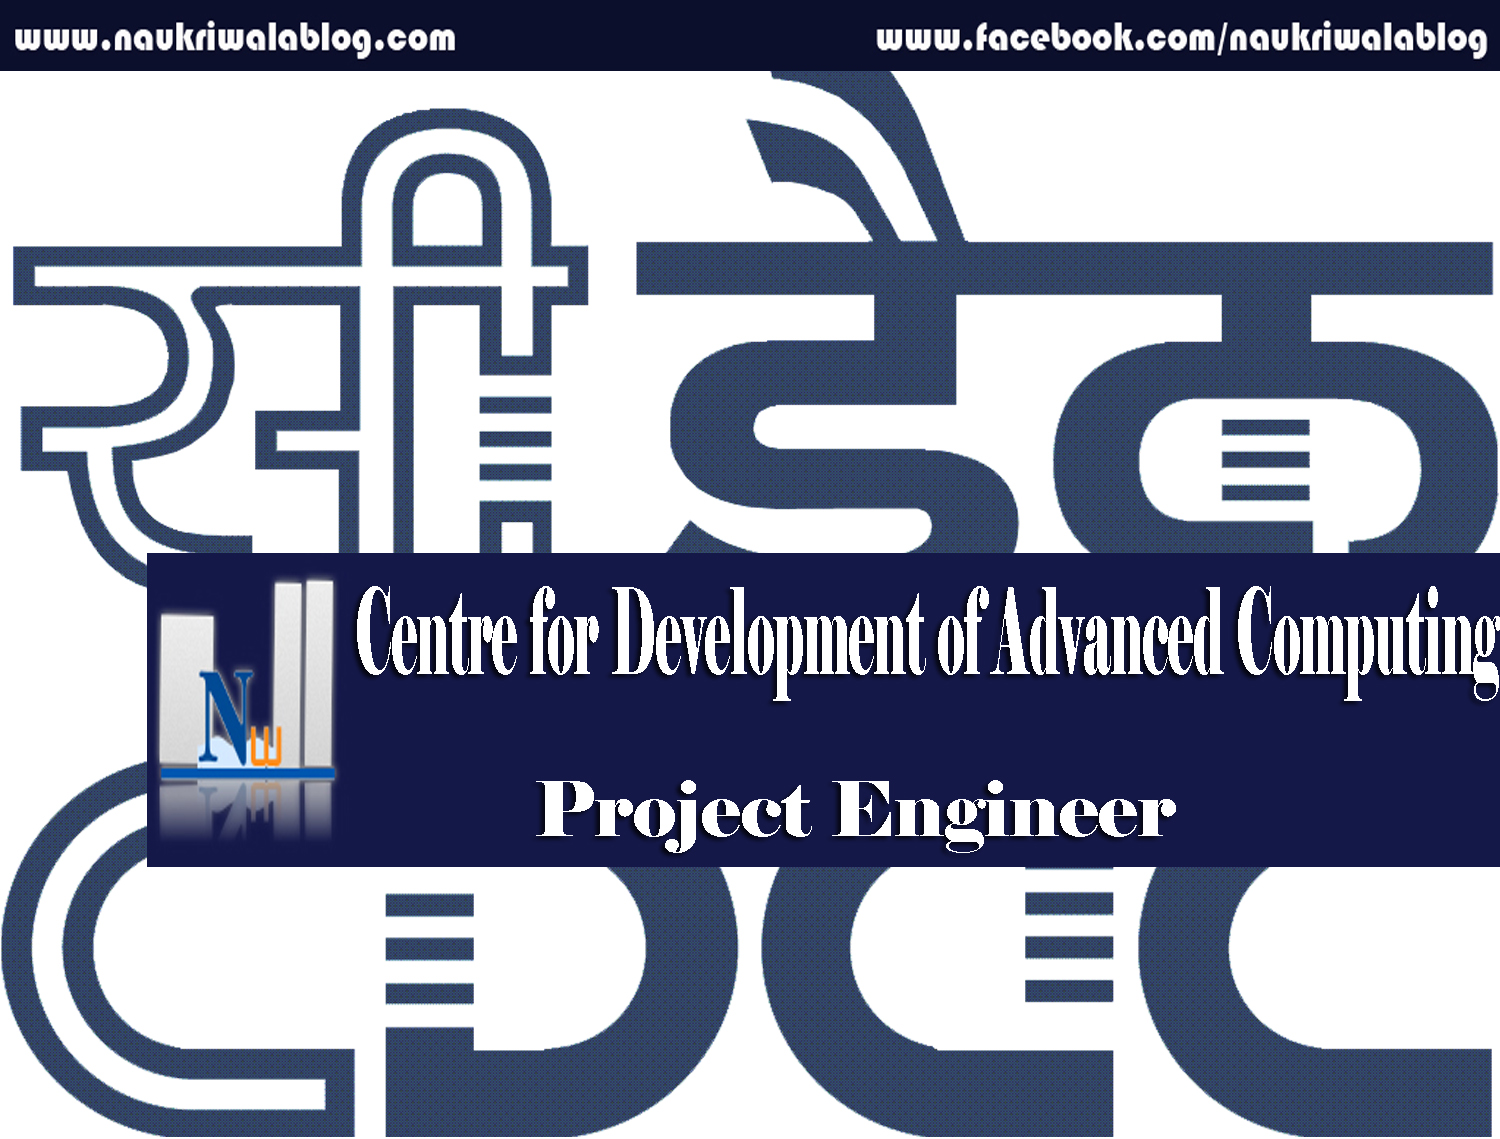 Project Engineer job2016